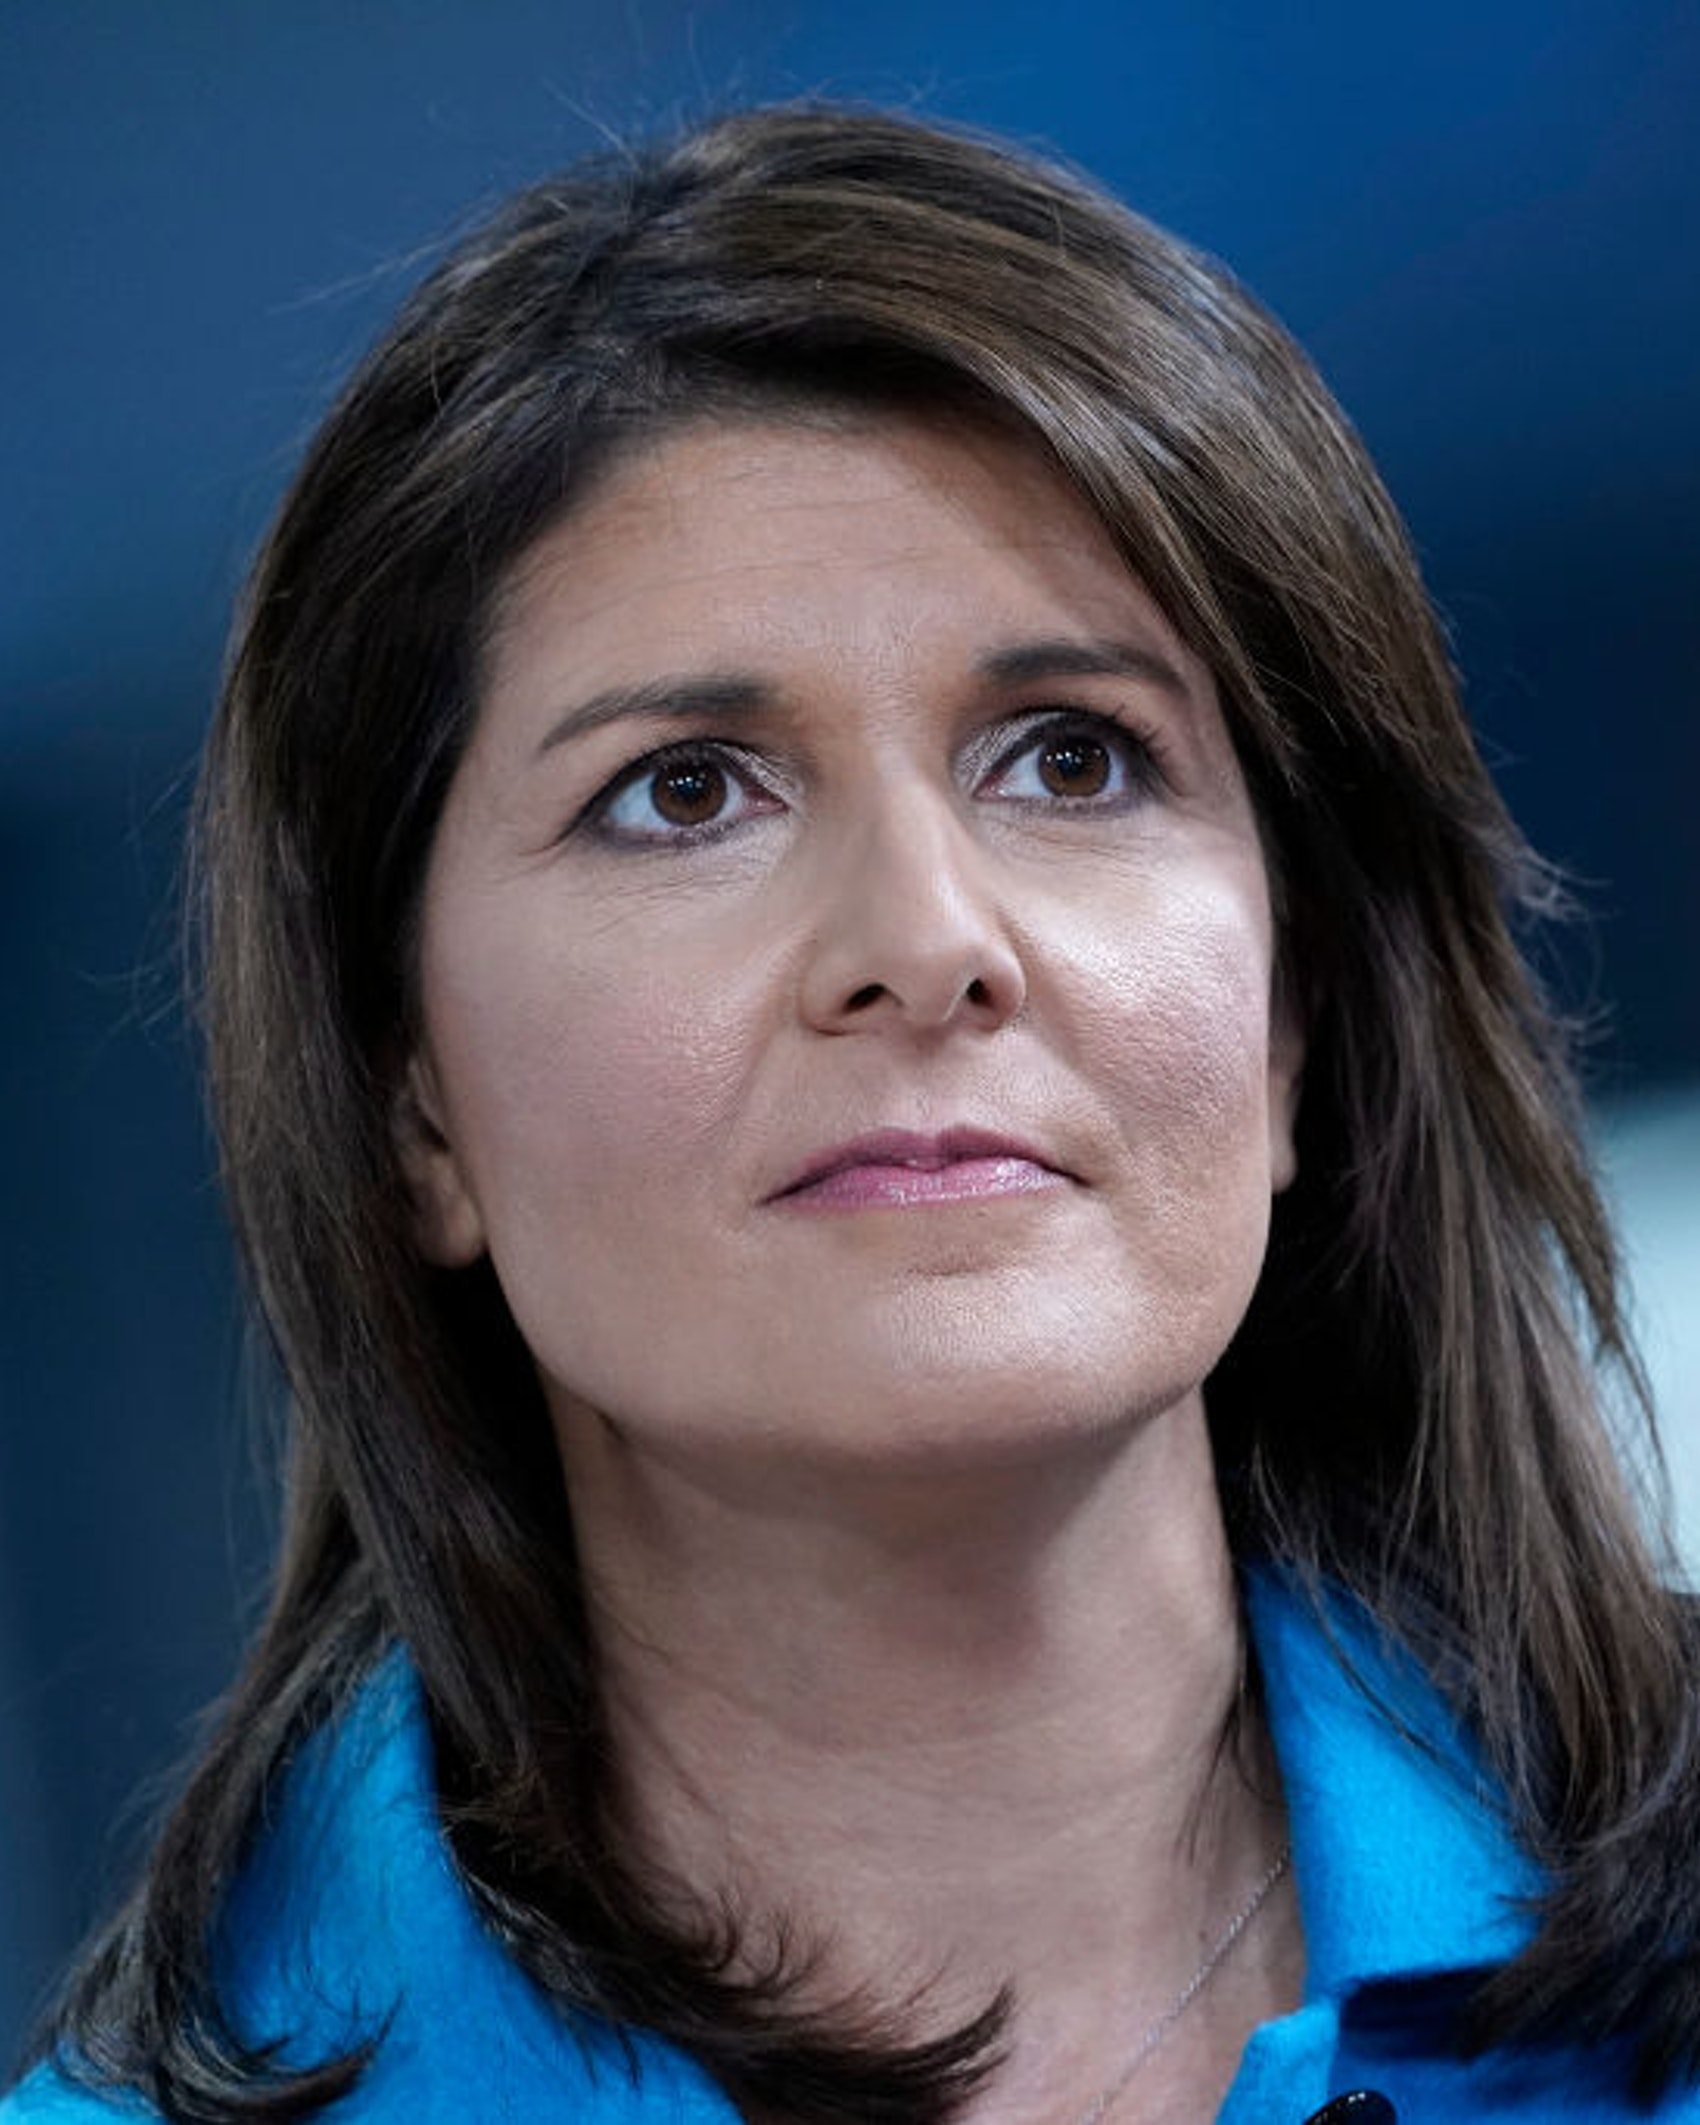 """NEW YORK, NEW YORK - NOVEMBER 12: (EXCLUSIVE COVERAGE) Former UN Ambassador Nikki Haley visits """"Fox & Friends"""" at Fox News Channel Studios on November 12, 2019 in New York City. (Photo by John Lamparski/Getty Images)"""